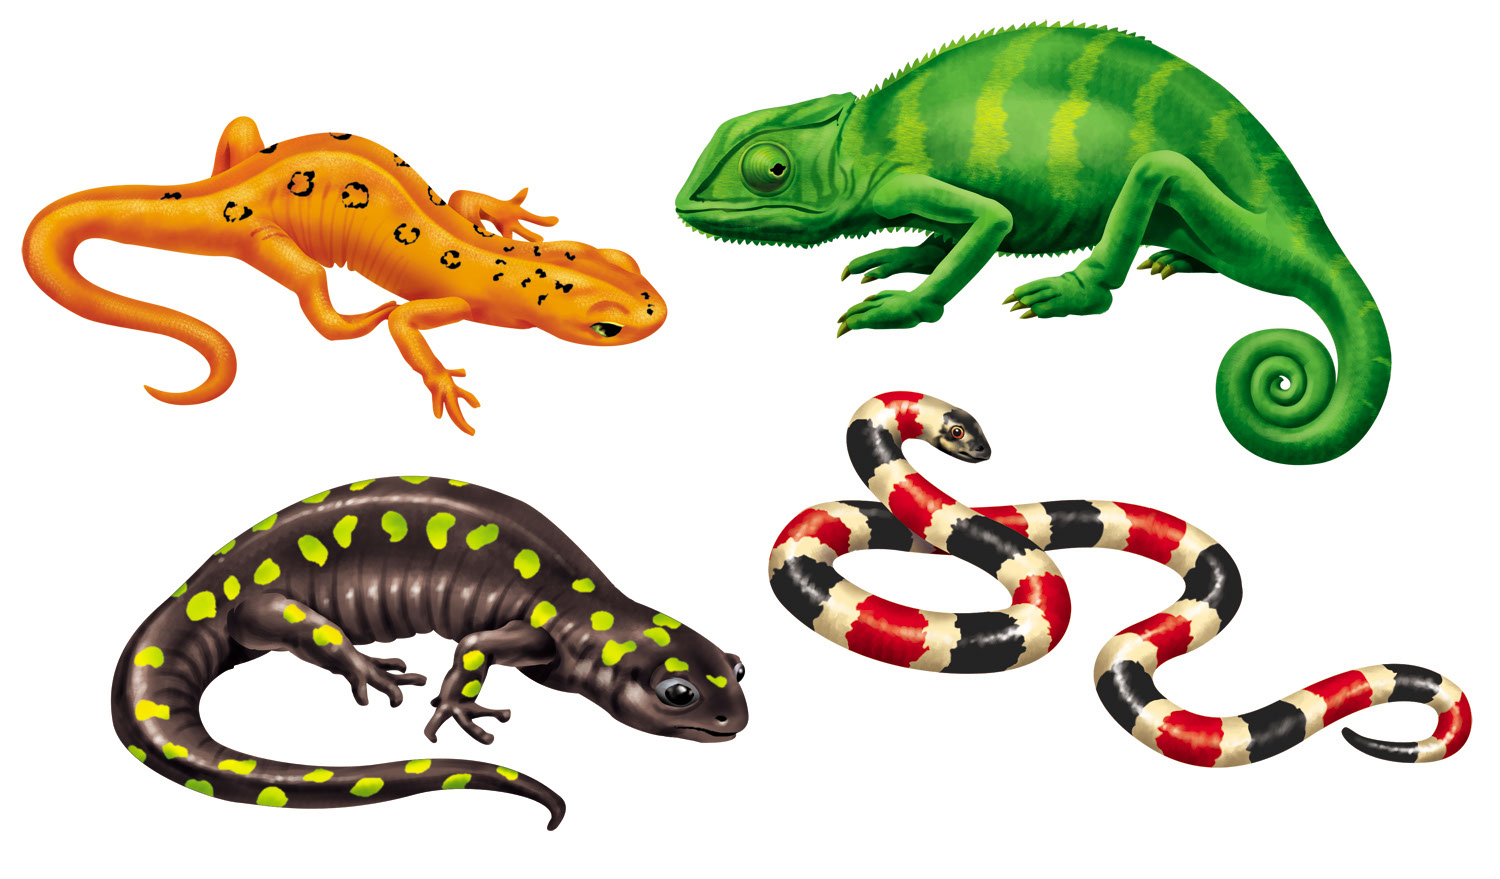 Rick Grayson_Animals_Reptiles